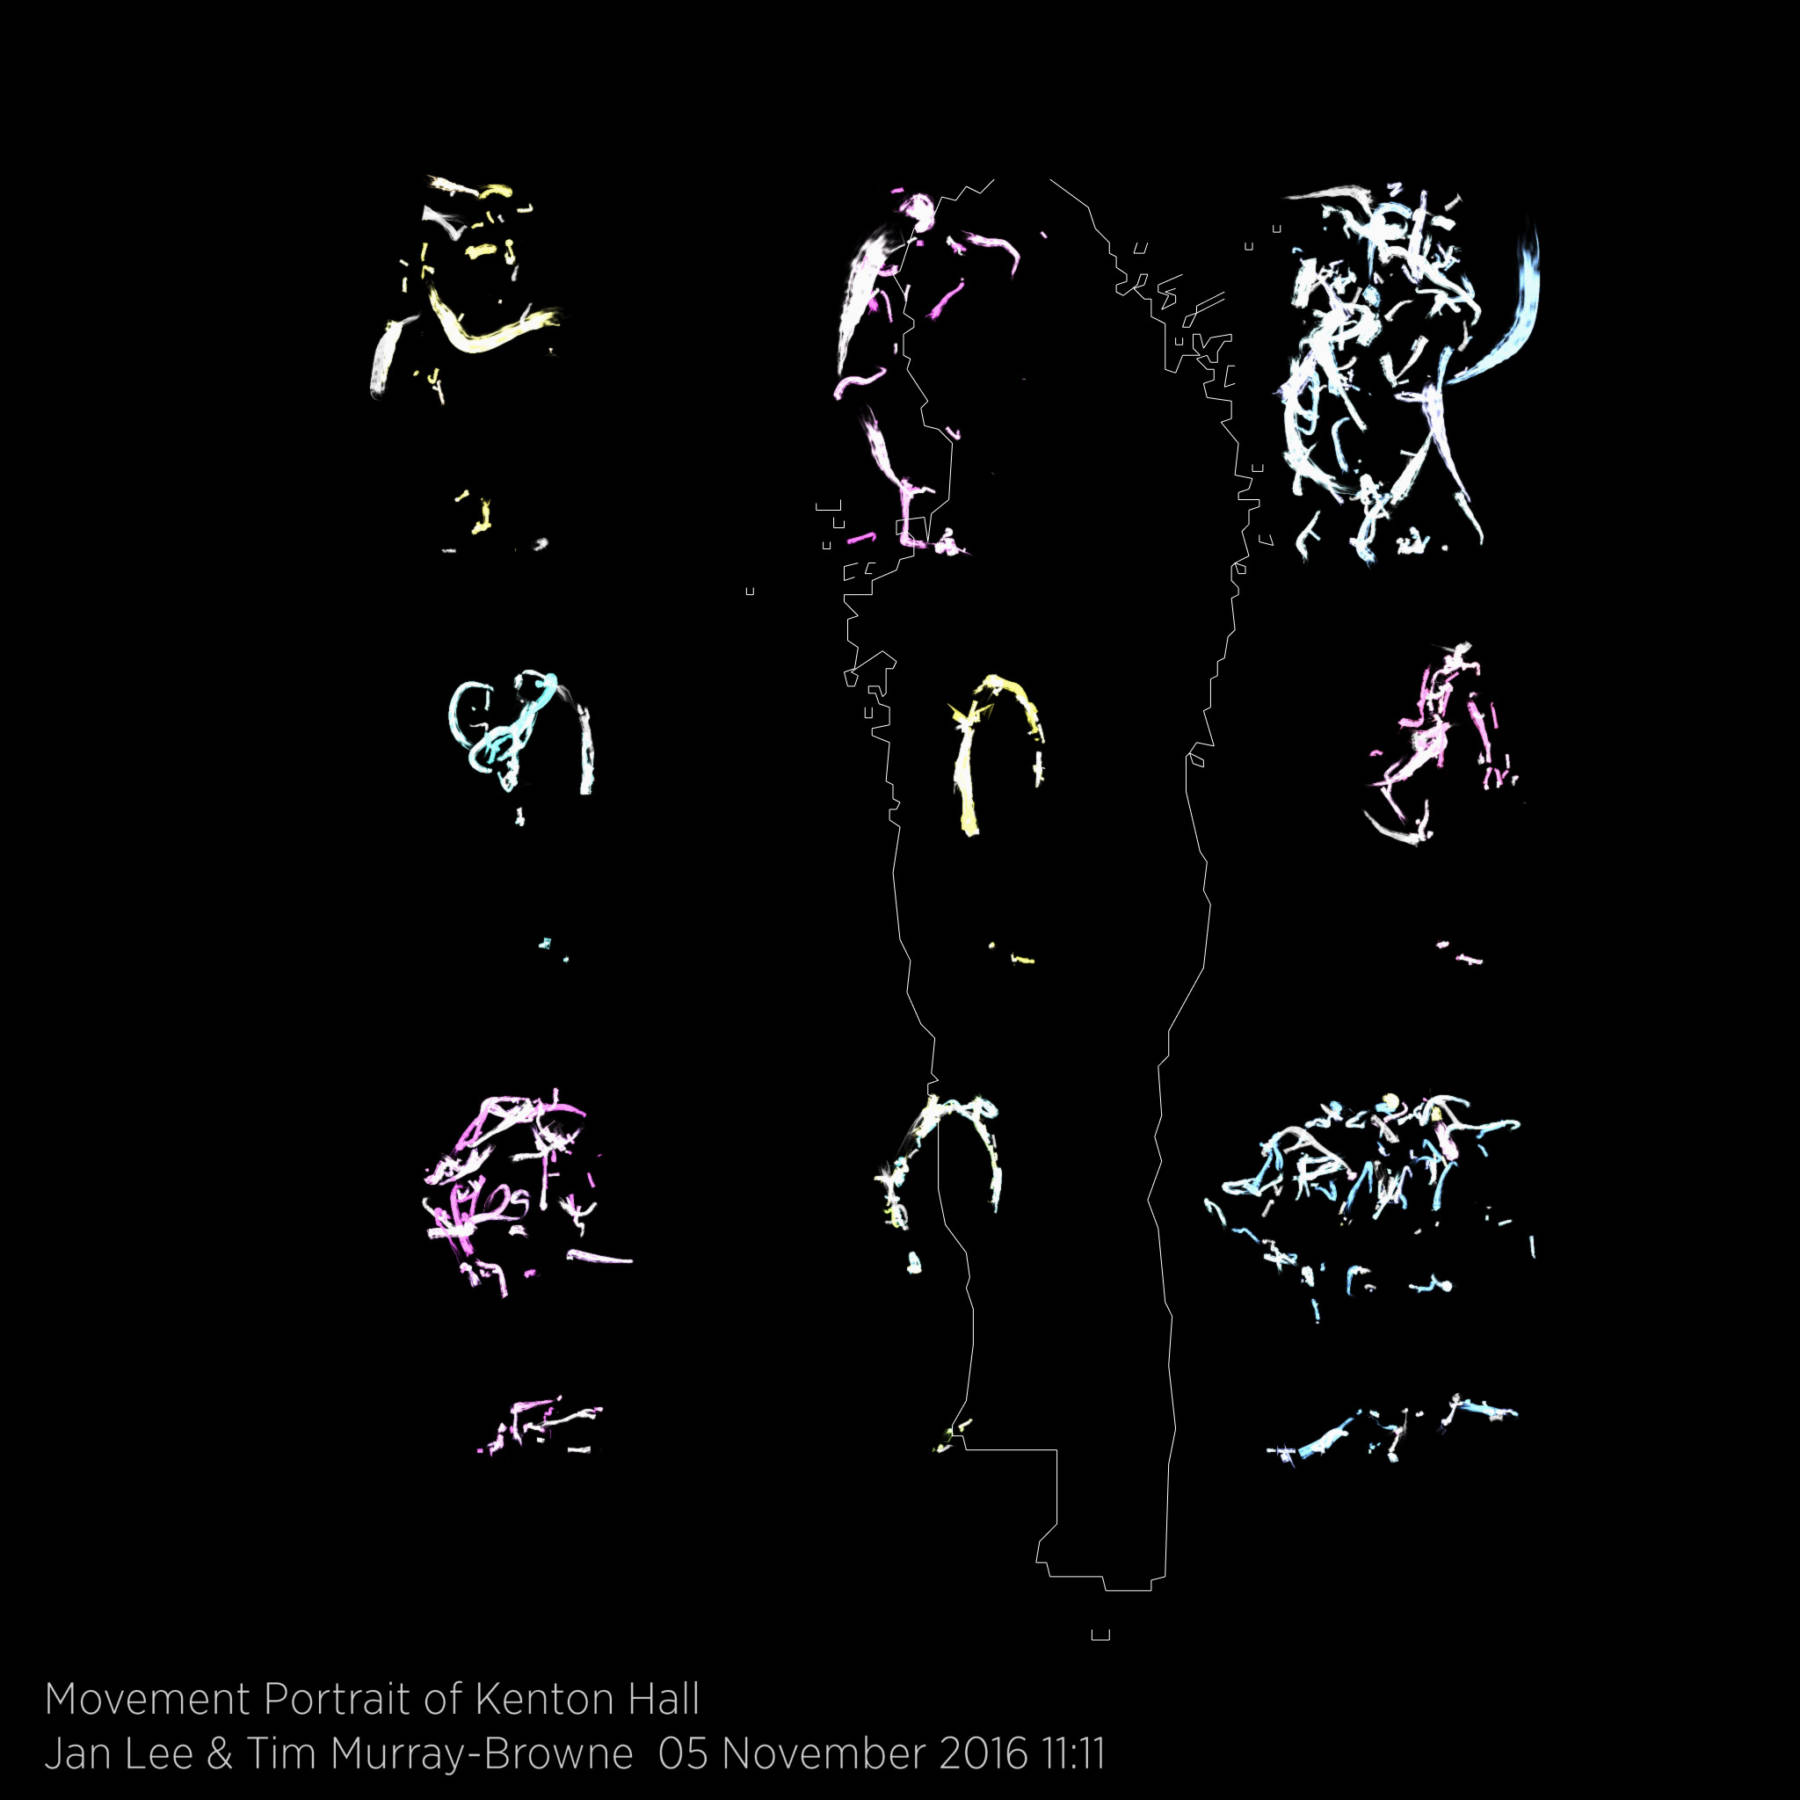 Movement Portrait of Kenton Hall by Jan Lee and Tim Murray-Browne. The portrait is made up of 9 significant moments from the immersive experience, arranged into a grid. Each shows marks drawn by parts of the body as sensed by a 3D camera through a process akin to a calligraphy of the body. Overlaid on top is the outline of the participant at the moment when the portrait was finalised. Part of Movement Alphabet by Jan Lee & Tim Murray-Browne. Taken at G.A.S. Station, 5 Nov 2016.